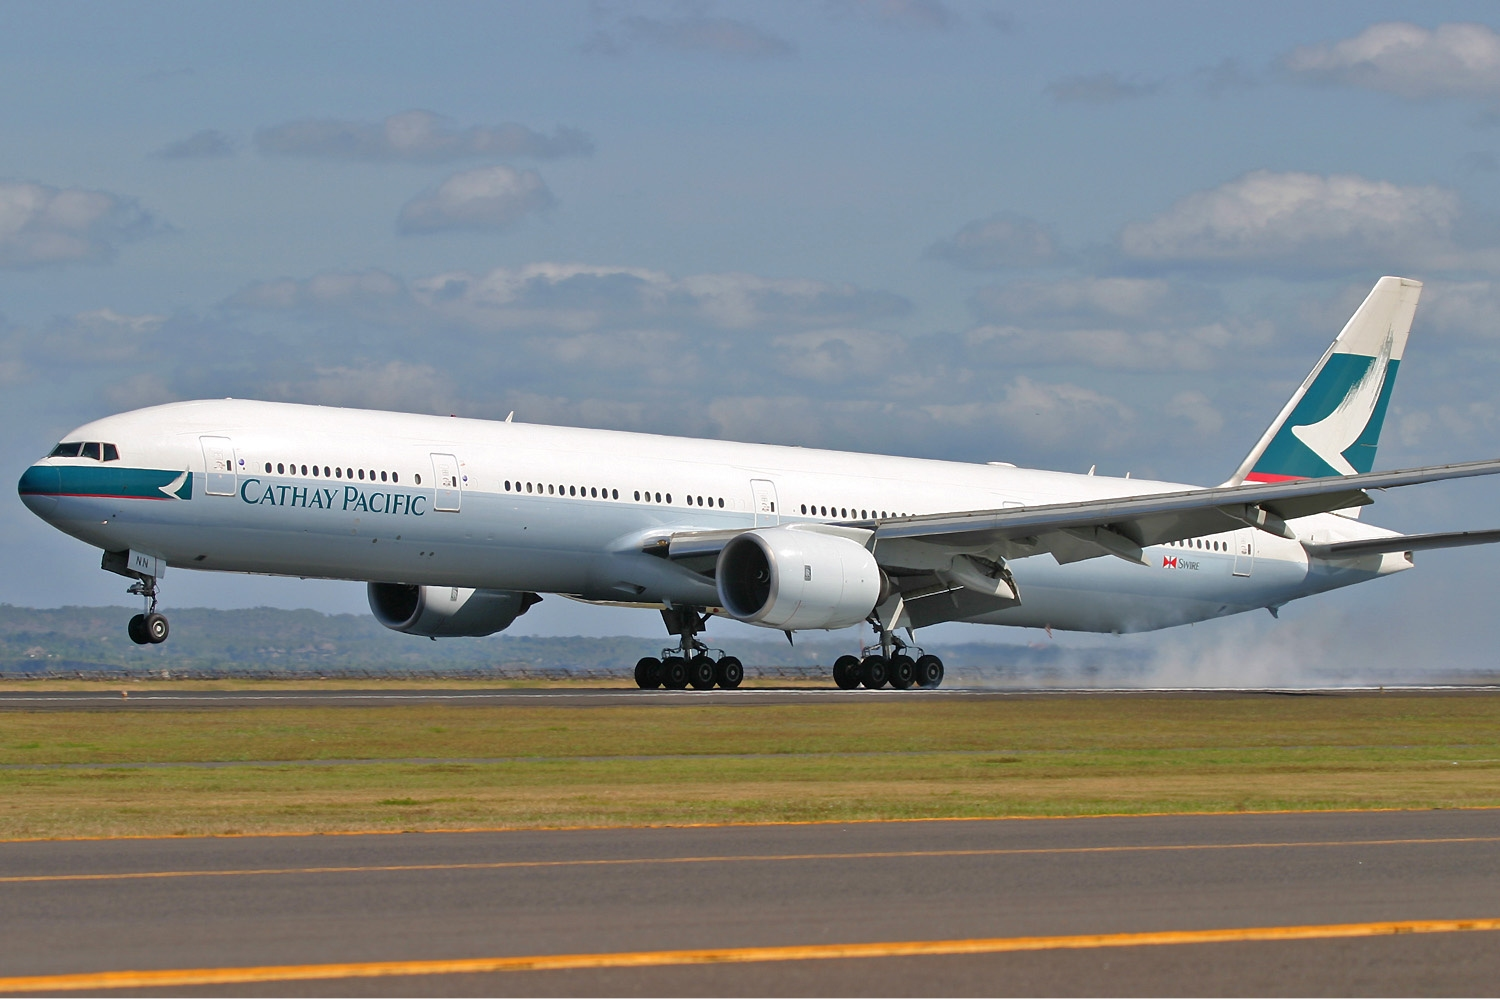 https://i2.wp.com/upload.wikimedia.org/wikipedia/commons/f/ff/Cathay_Pacific_Boeing_777-300_Pichugin-1.jpg